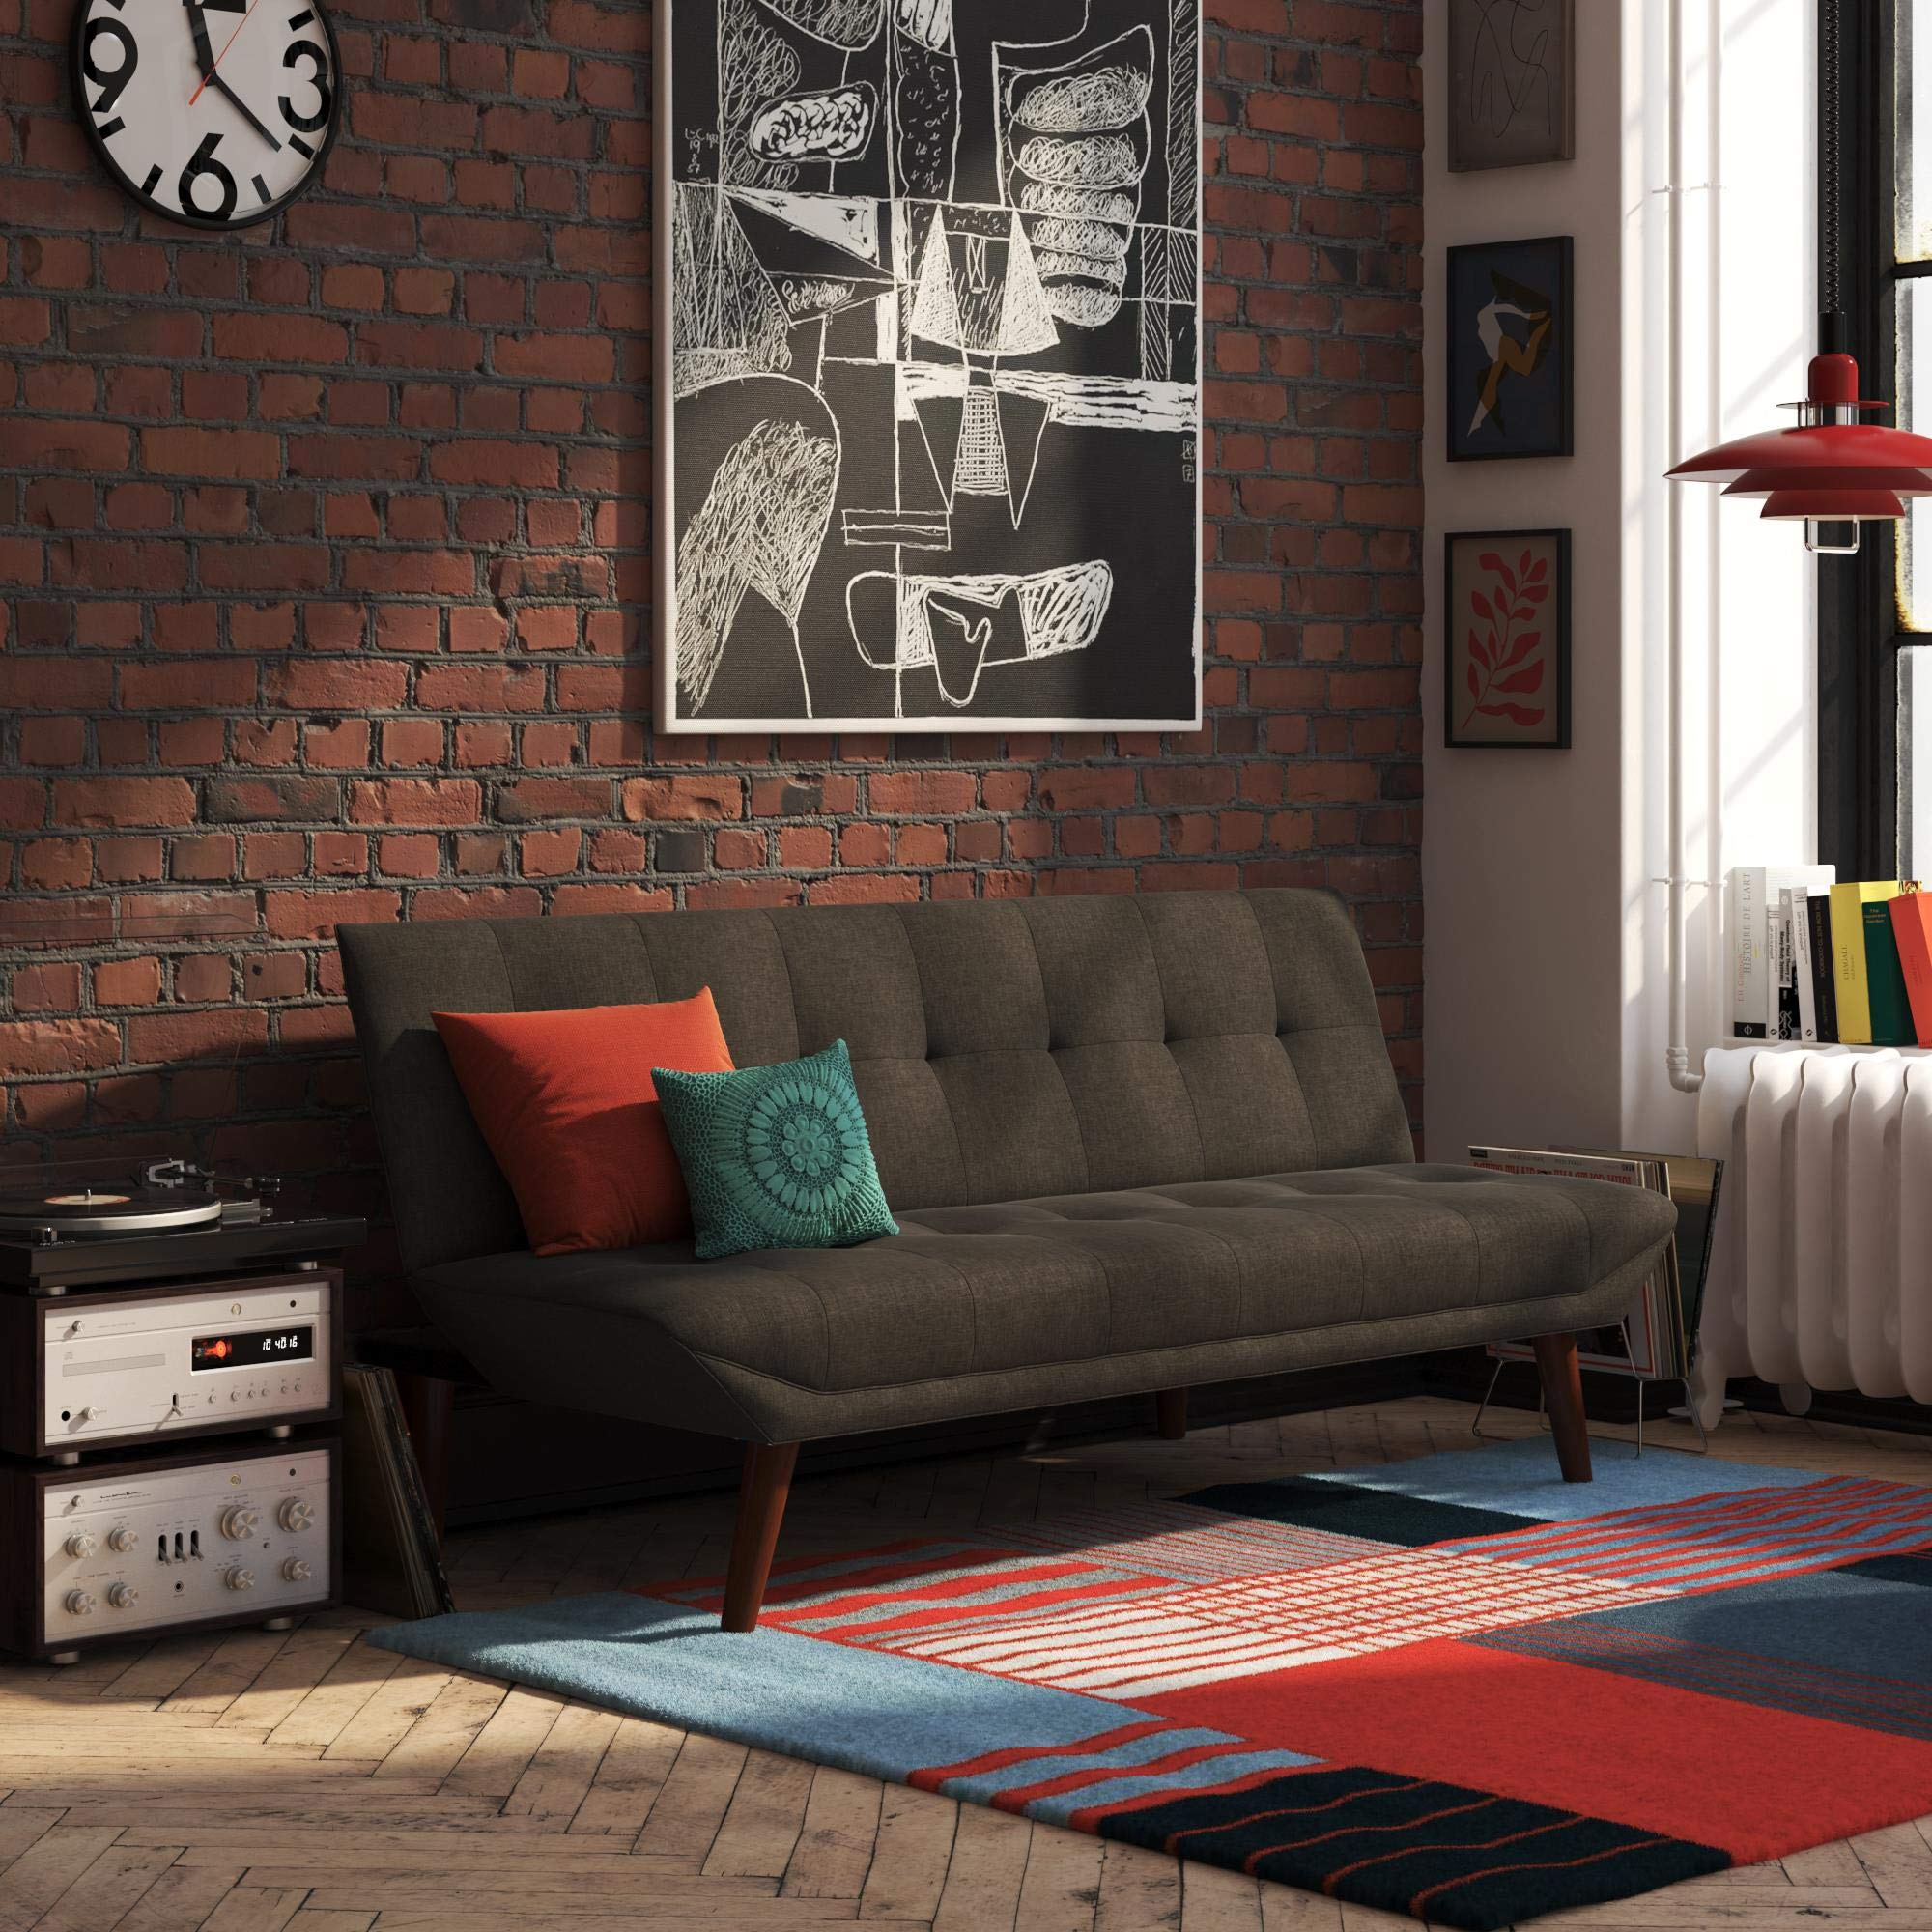 REALROOMS Adley Small Space Convertible Modern Futon Couch Lounger, Dark Grey Linen by REALROOMS